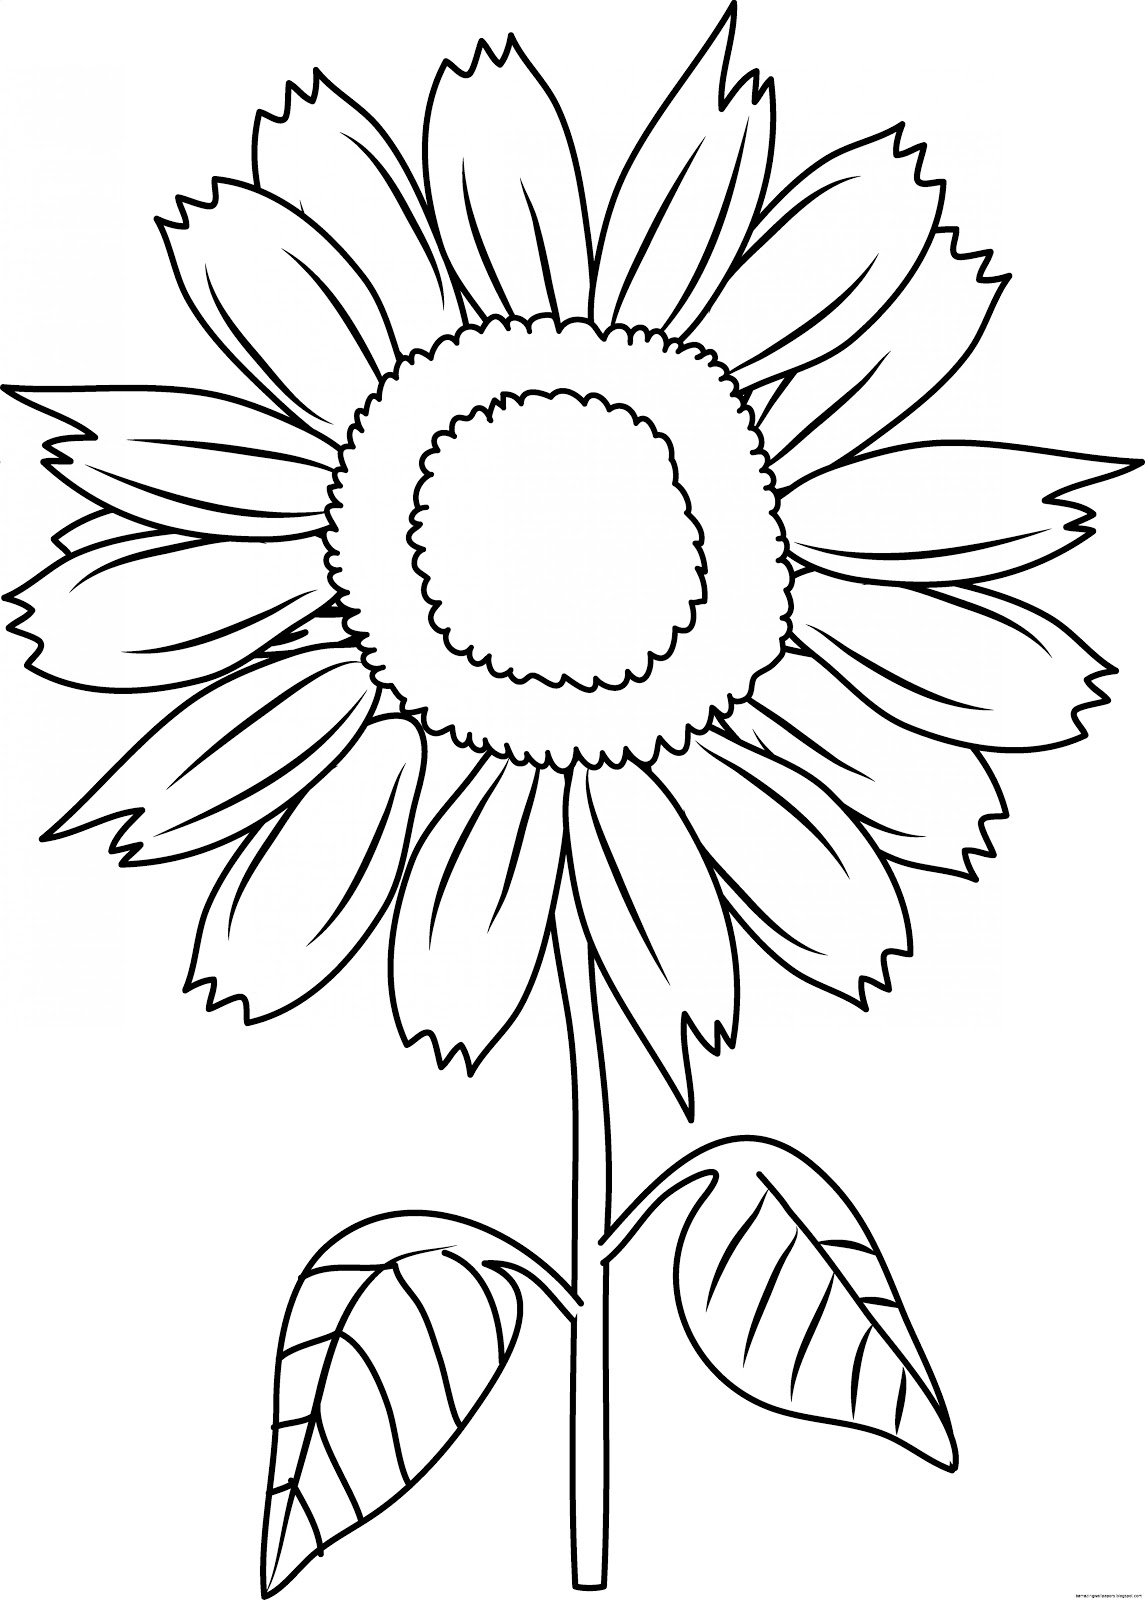 Sunflowers Clip Art Black And White